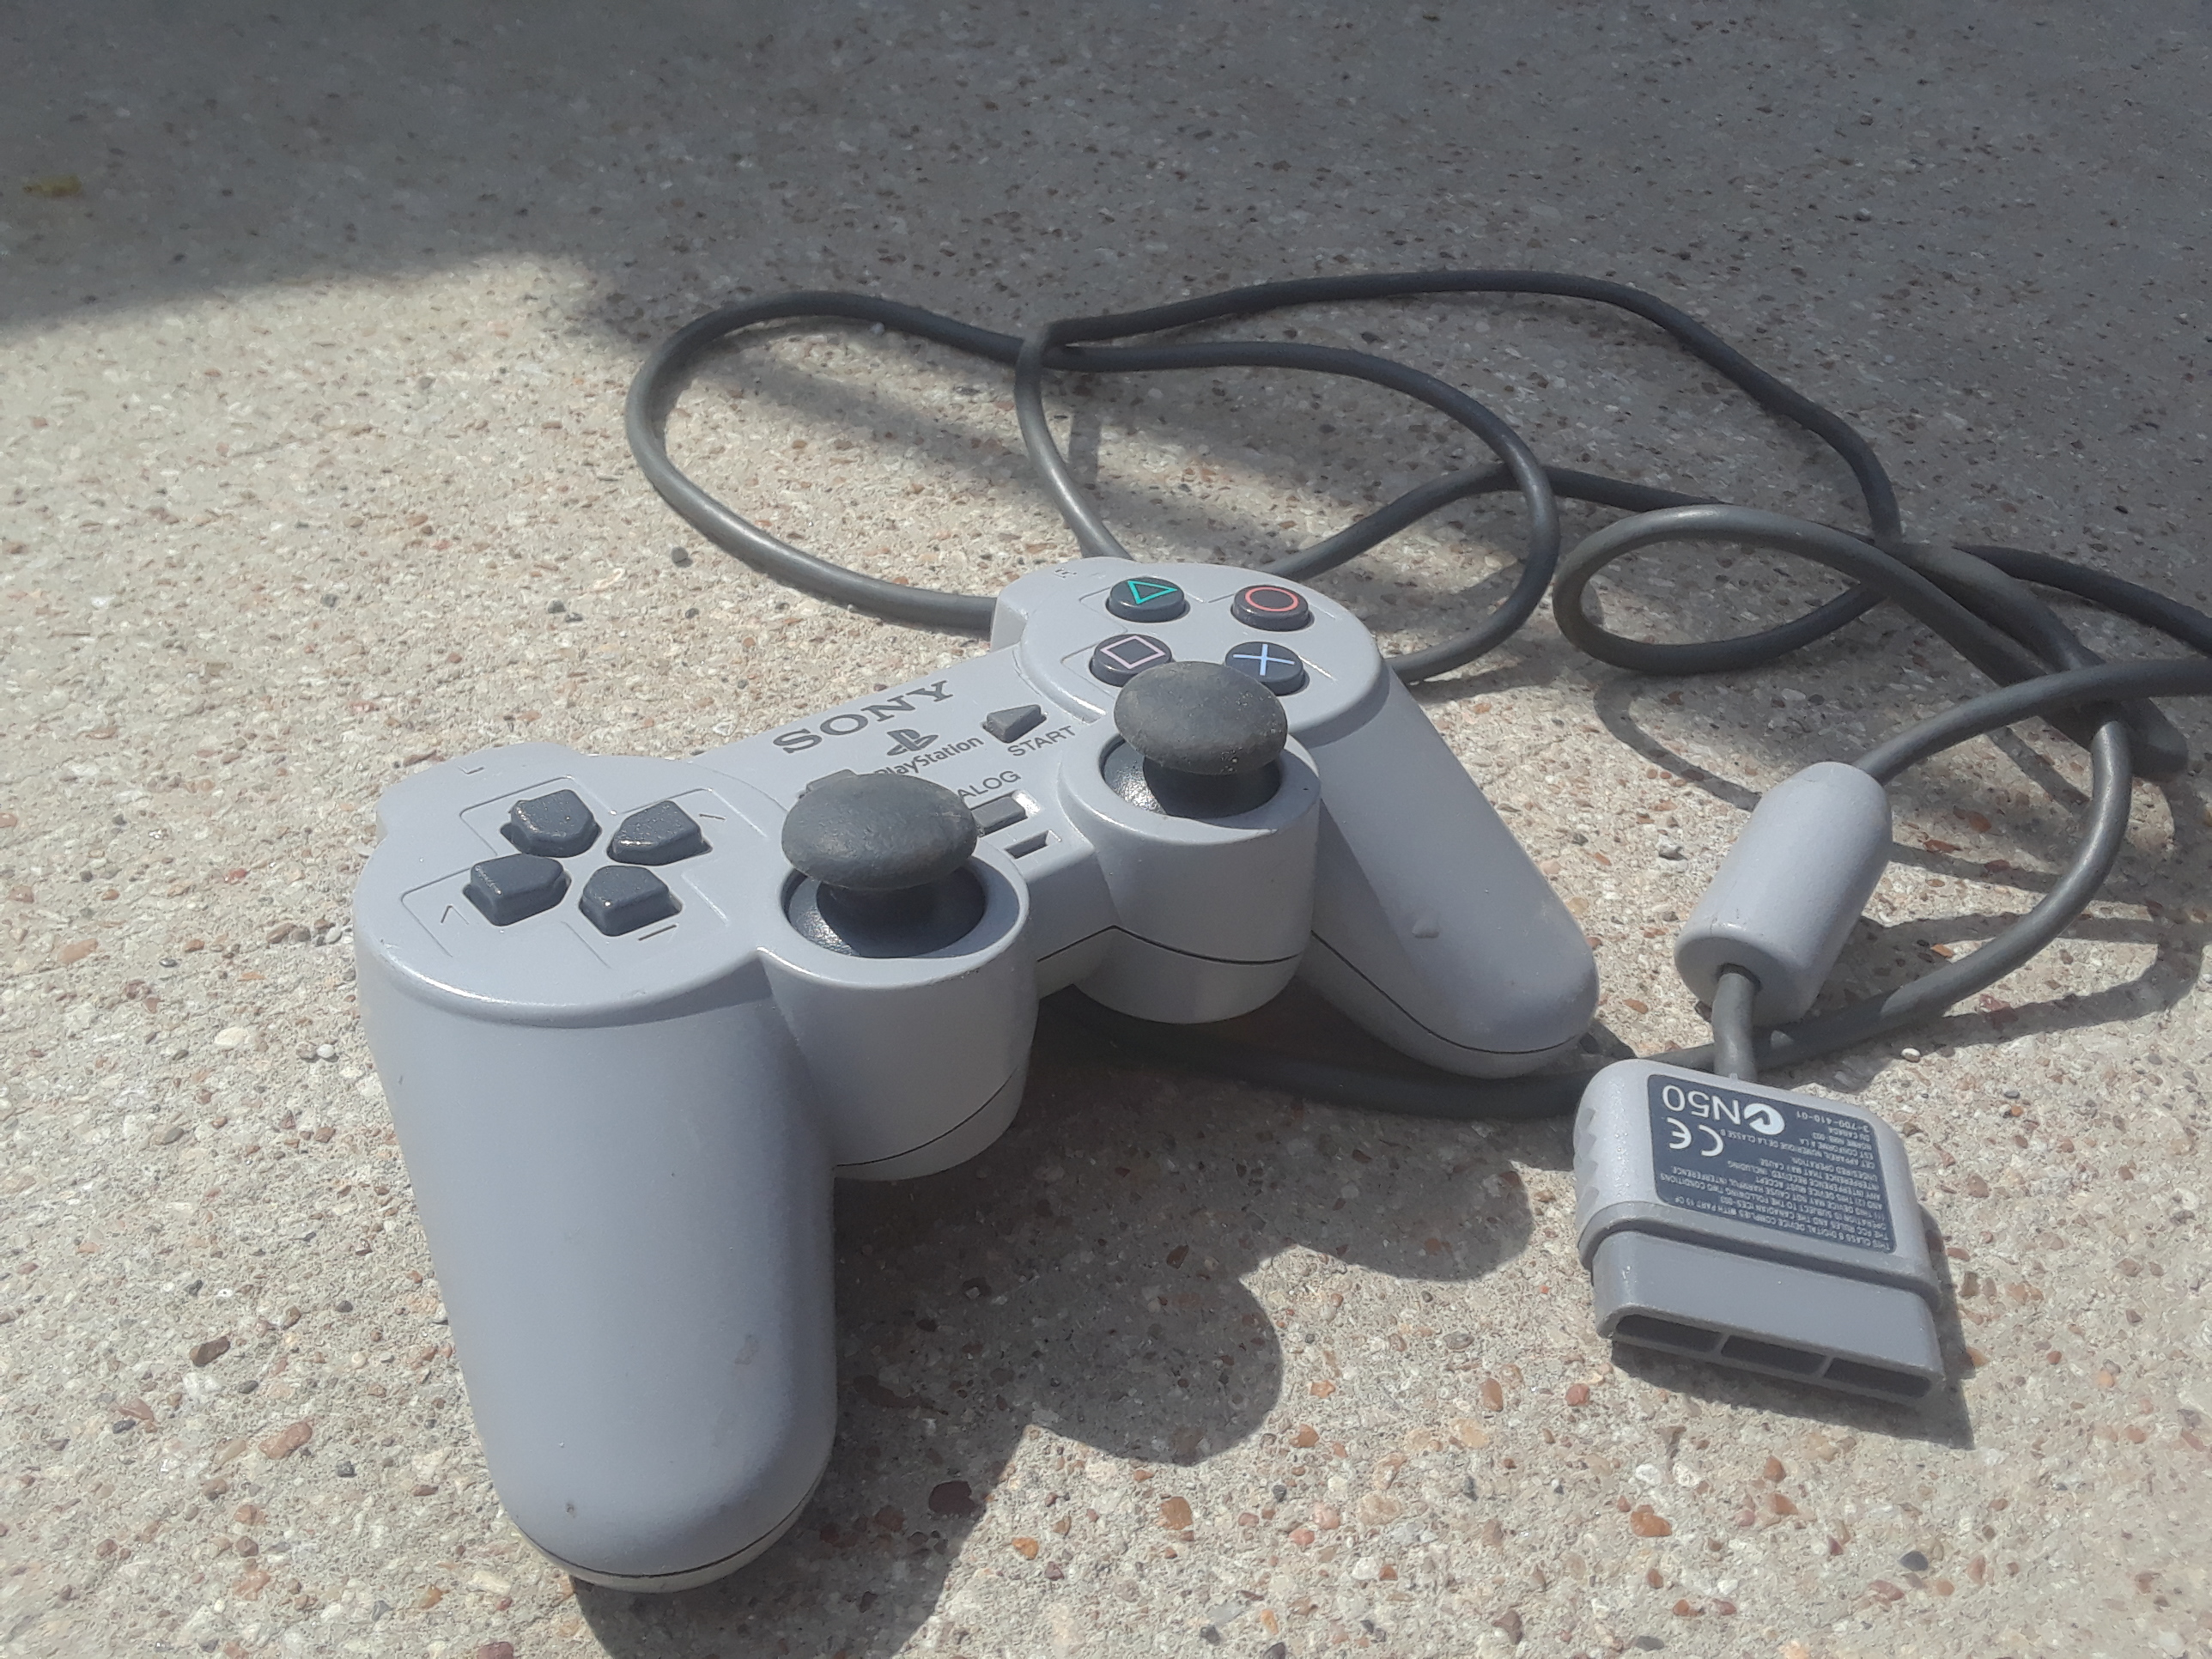 Playstation 1 Wired Controller Scph-1200